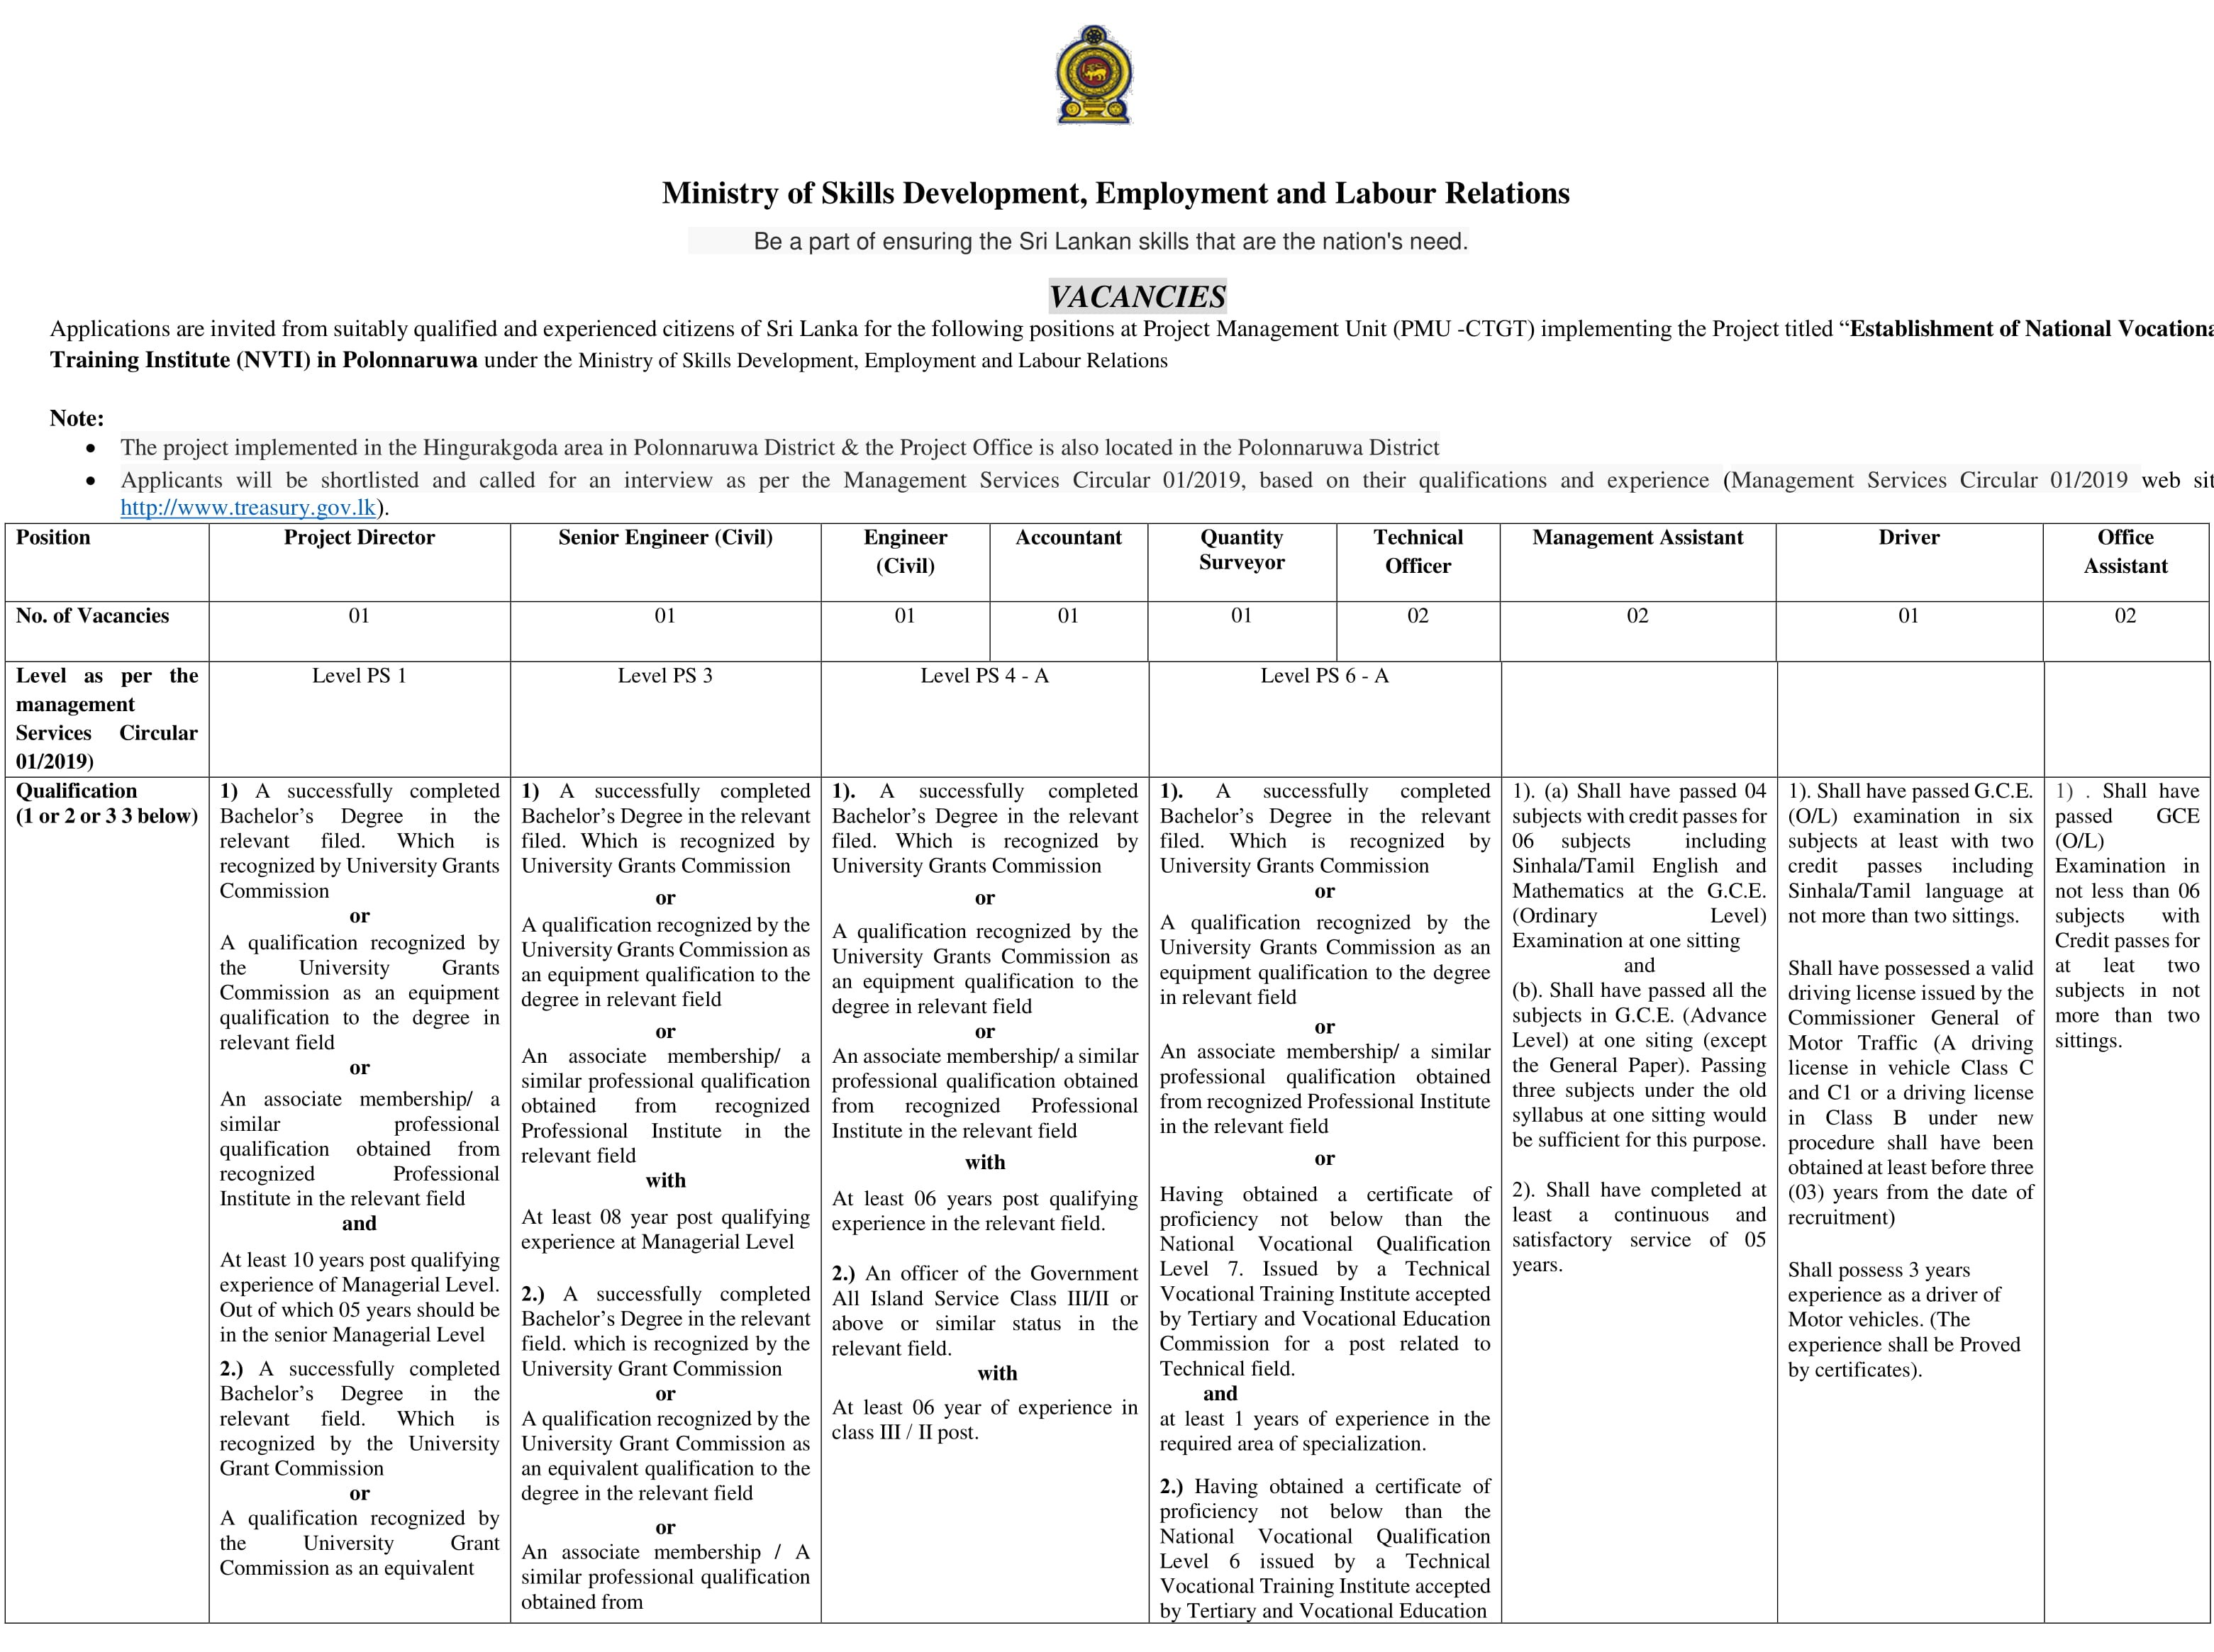 Management Assistant, Office Assistant, Driver, Technical Officer, Quantity Surveyor, Accountant, Senior Engineer (Civil), Engineer (Civil), Project Director - Ministry of Skills Development, Employment & Labour Relations